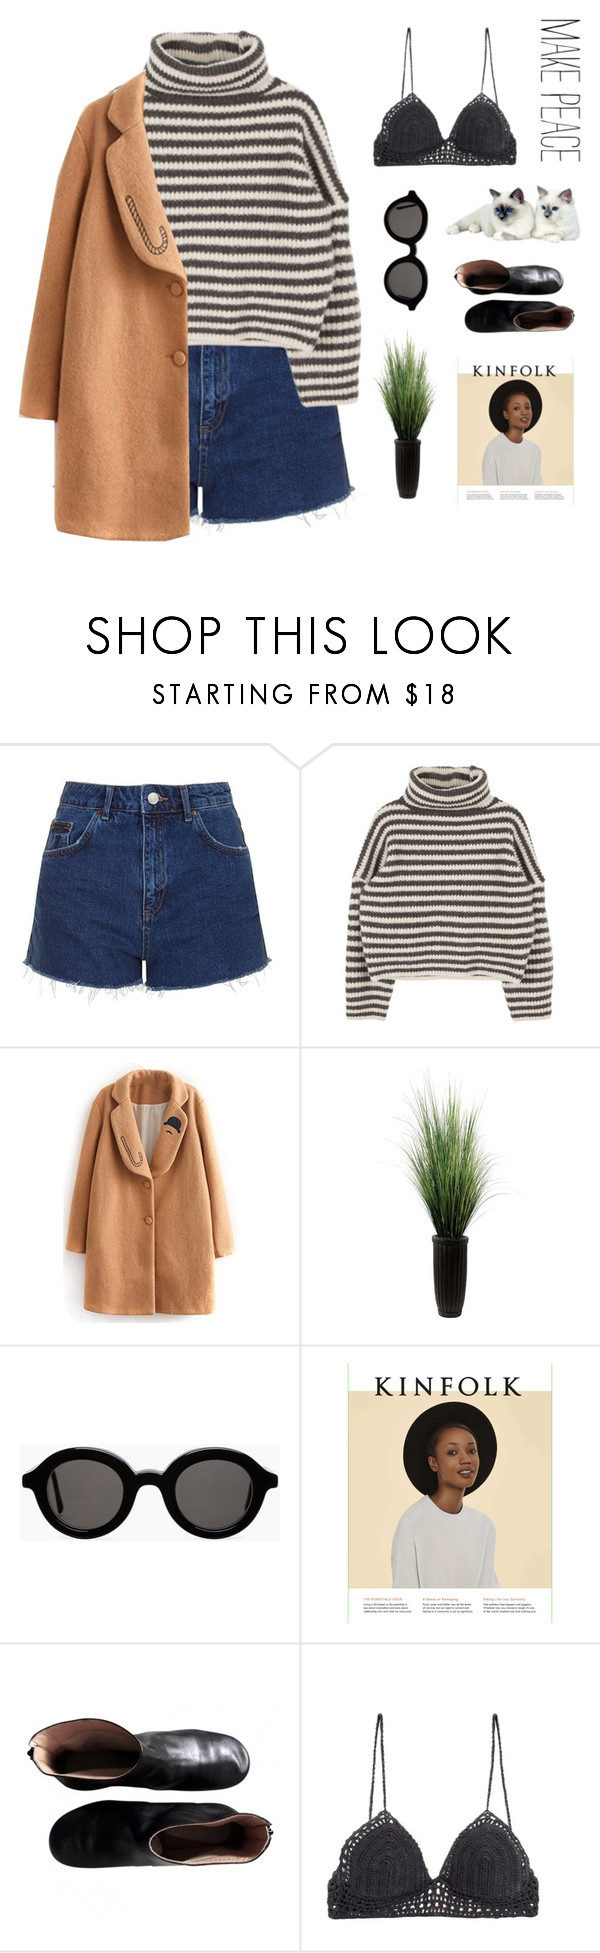 """""""MAKEPEACE"""" by xxpai ❤ liked on Polyvore featuring Topshop, Laura Ashley, Mykita, Maison Margiela and SHE MADE ME"""